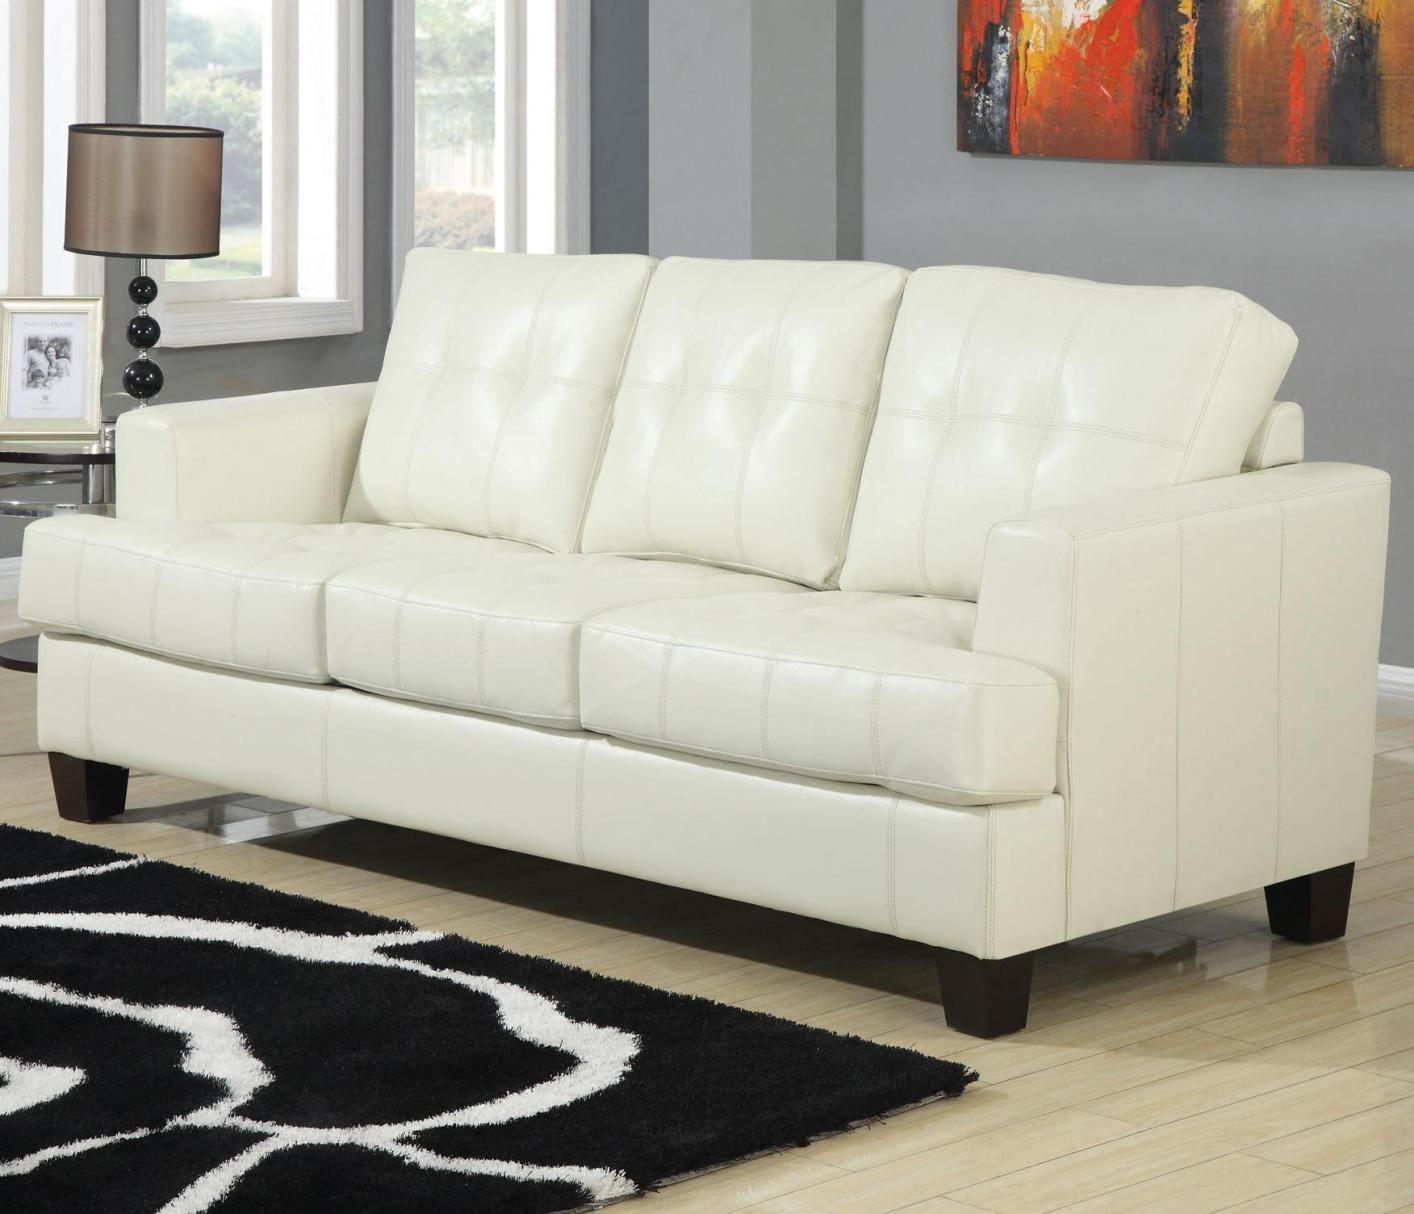 Exceptionnel Samuel Beige Leather Sofa Bed Samuel Beige Leather Sofa Bed ...